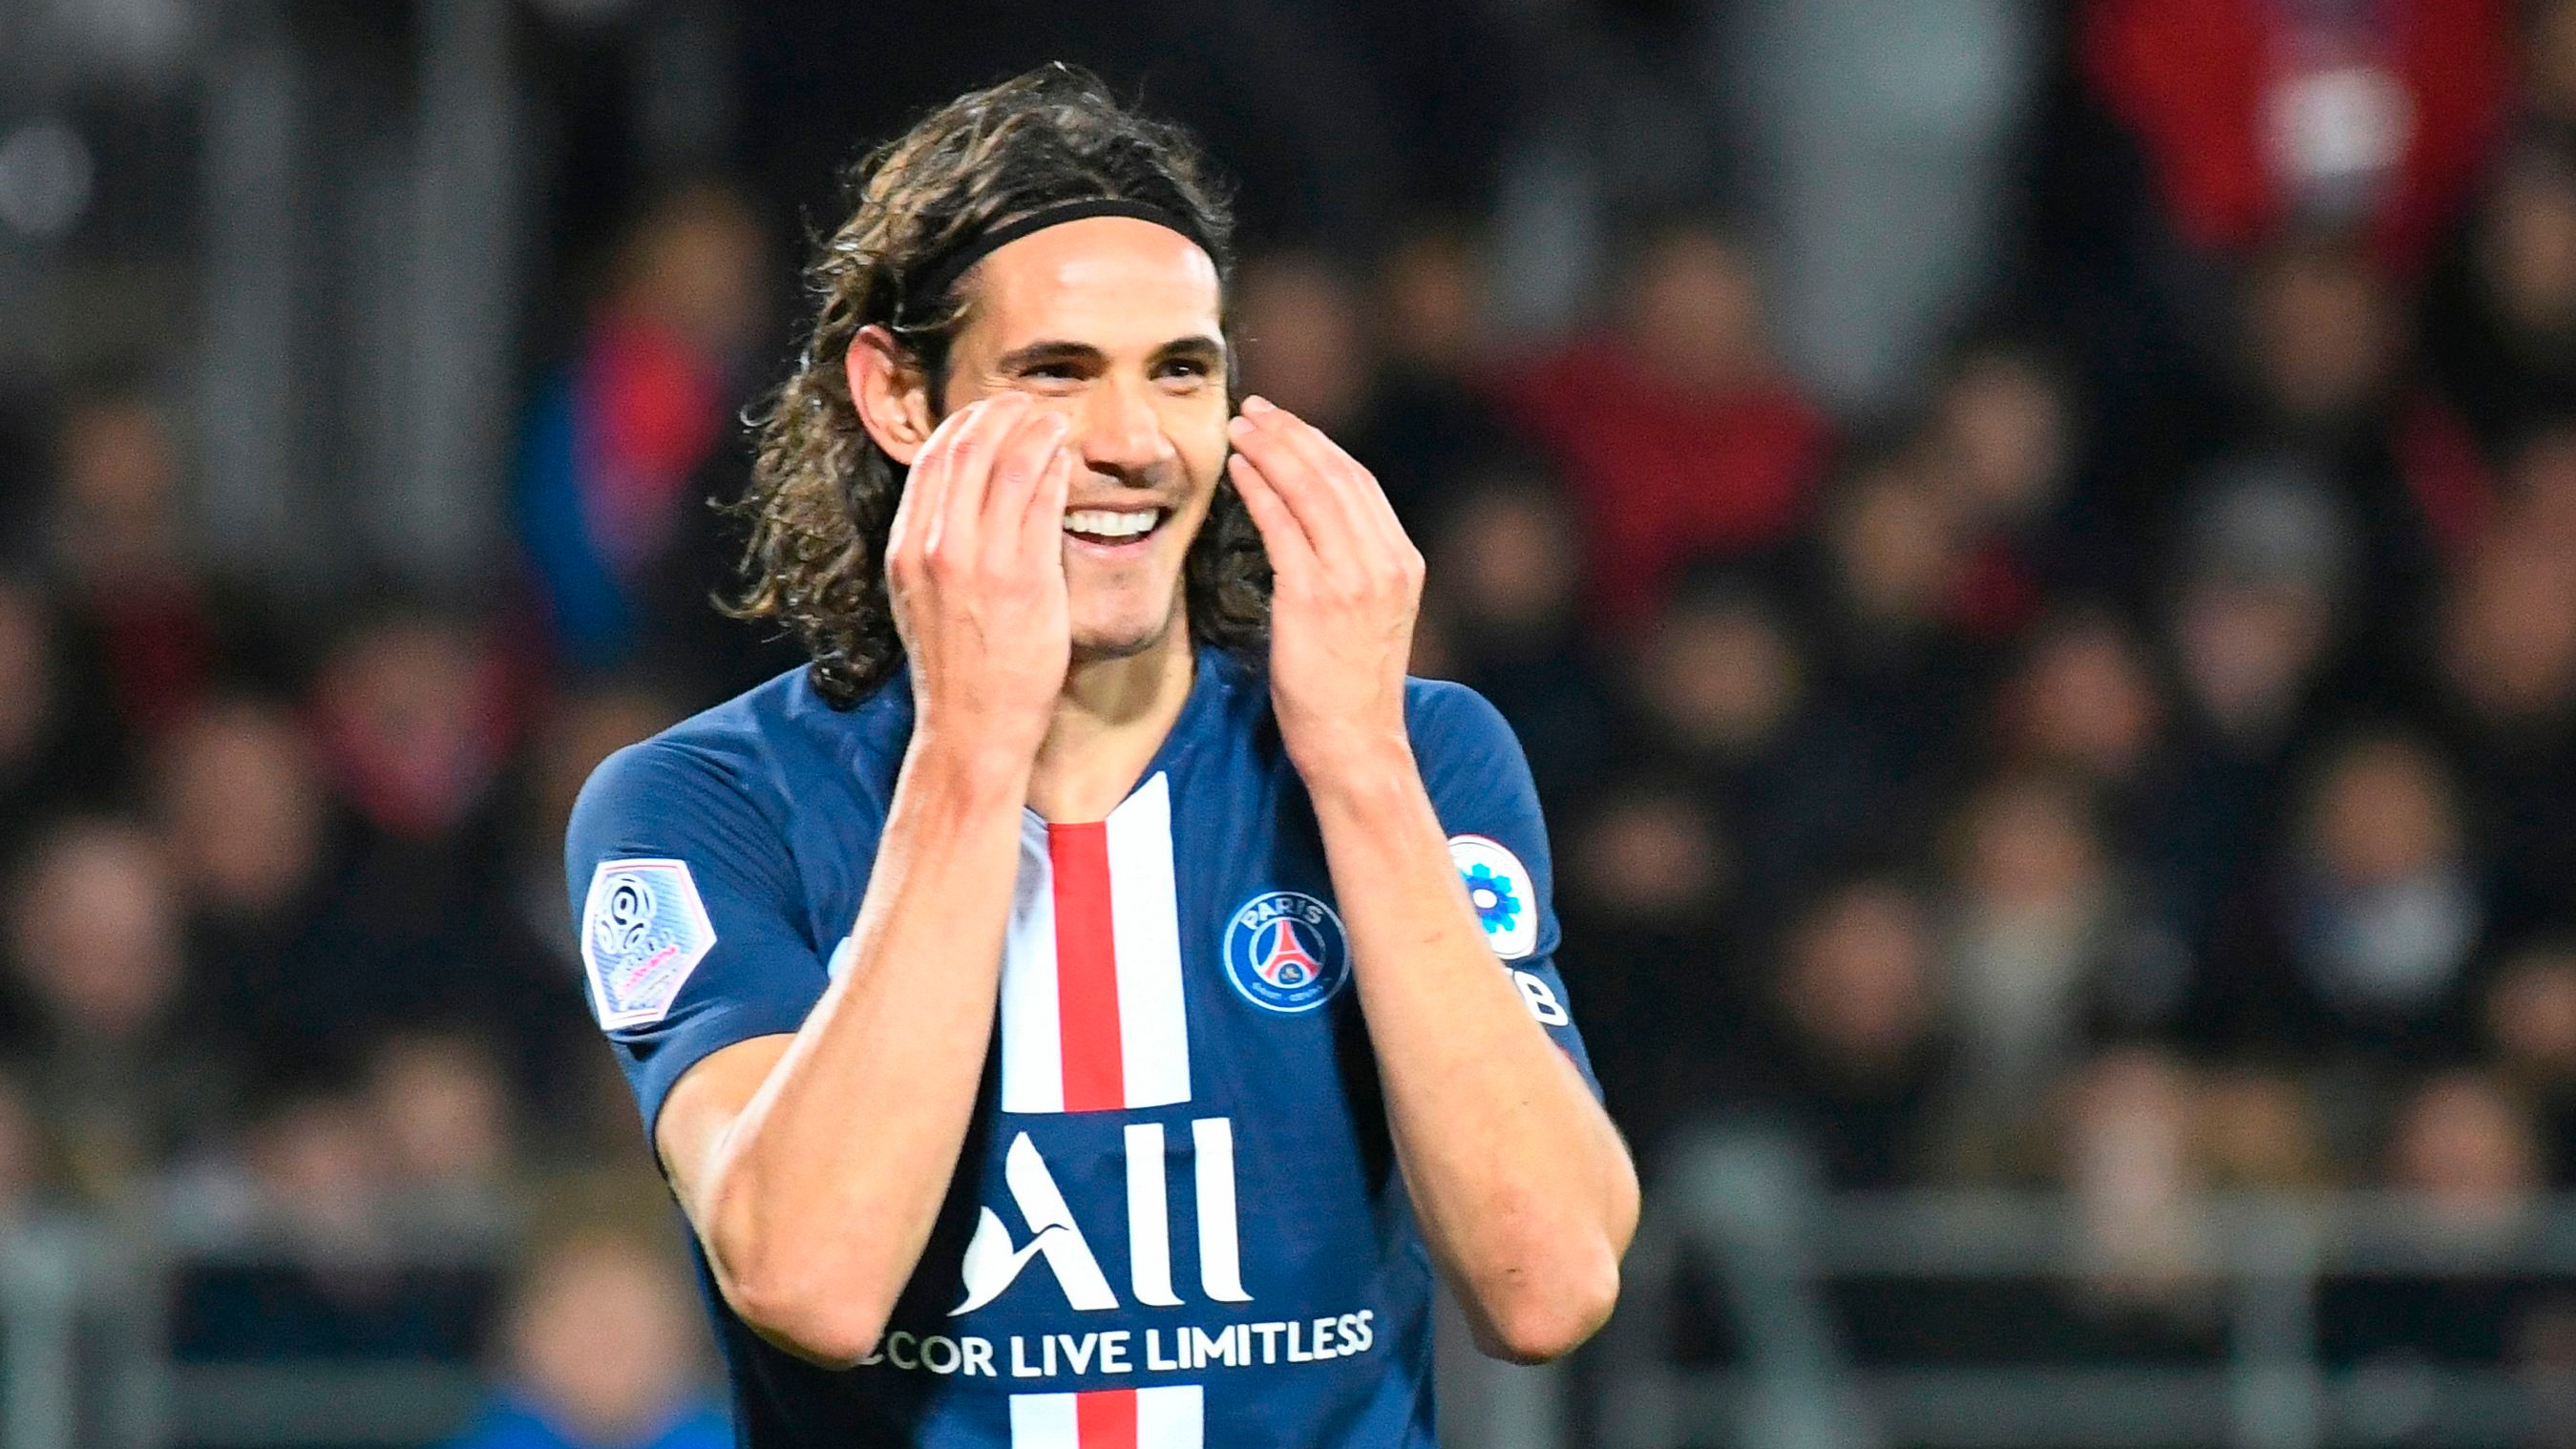 Cavani & Meunier to leave PSG in June as duo decide against extension for Champions League